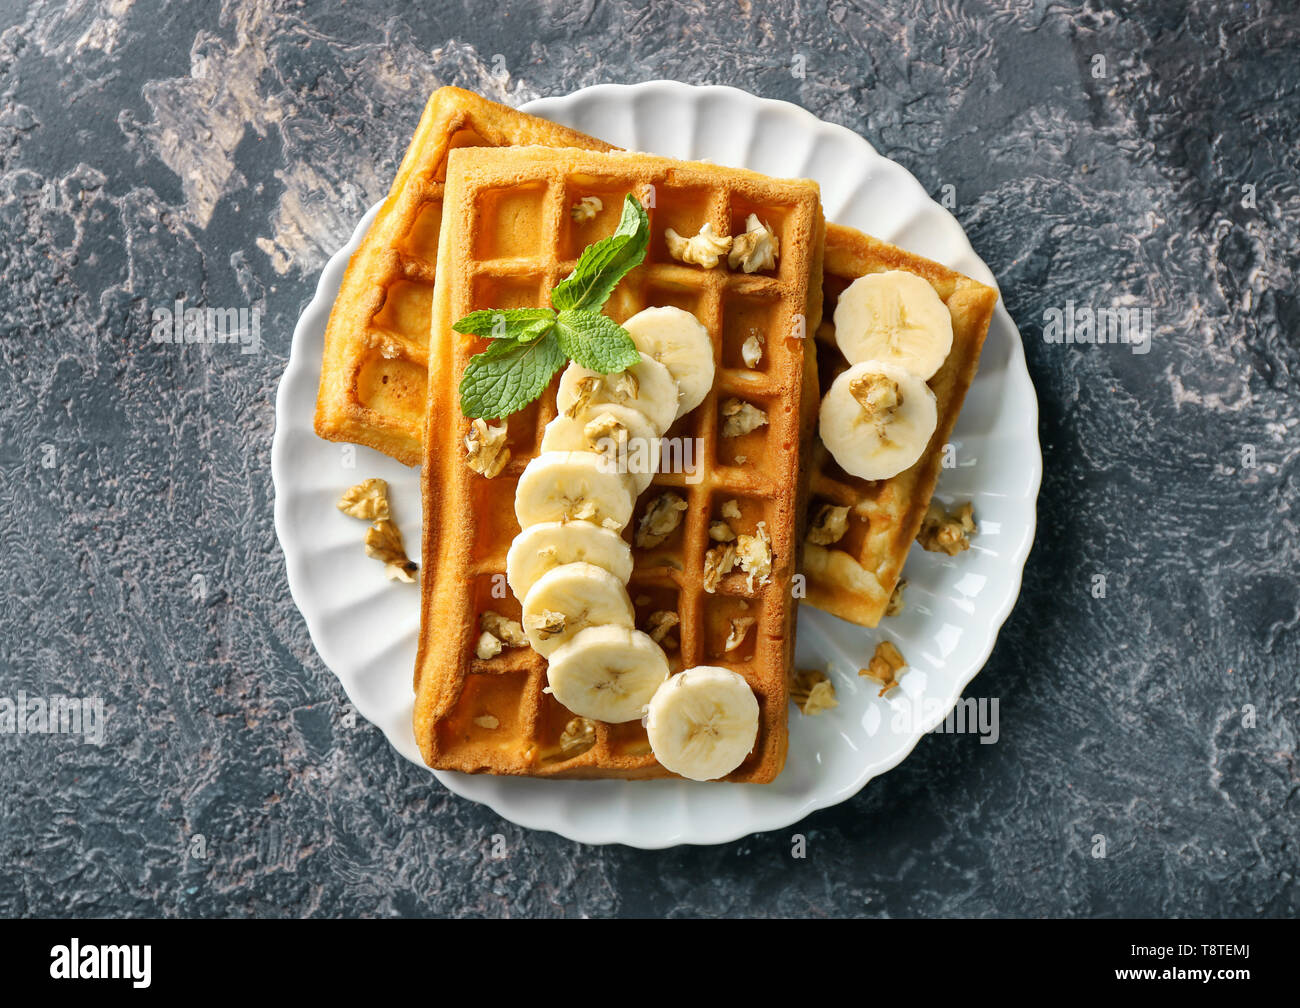 Delicious waffles with banana slices and nuts on grunge background - Stock Image